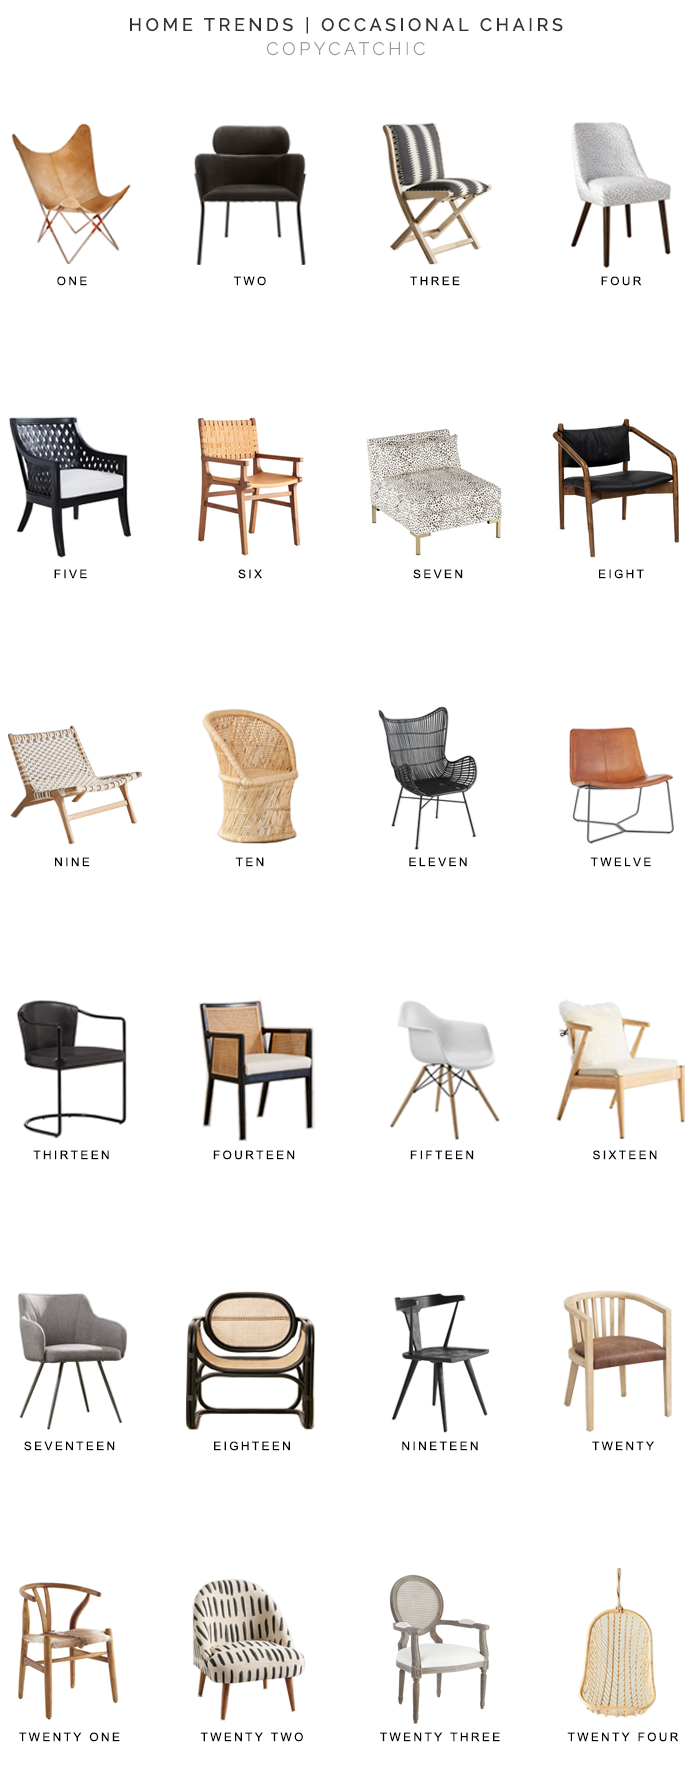 occasional chairs for less, occasional chair look for less, accent chairs for less, copycatchic luxe living for less, budget home decor and design, daily finds, home trends, sales, budget travel and room redos